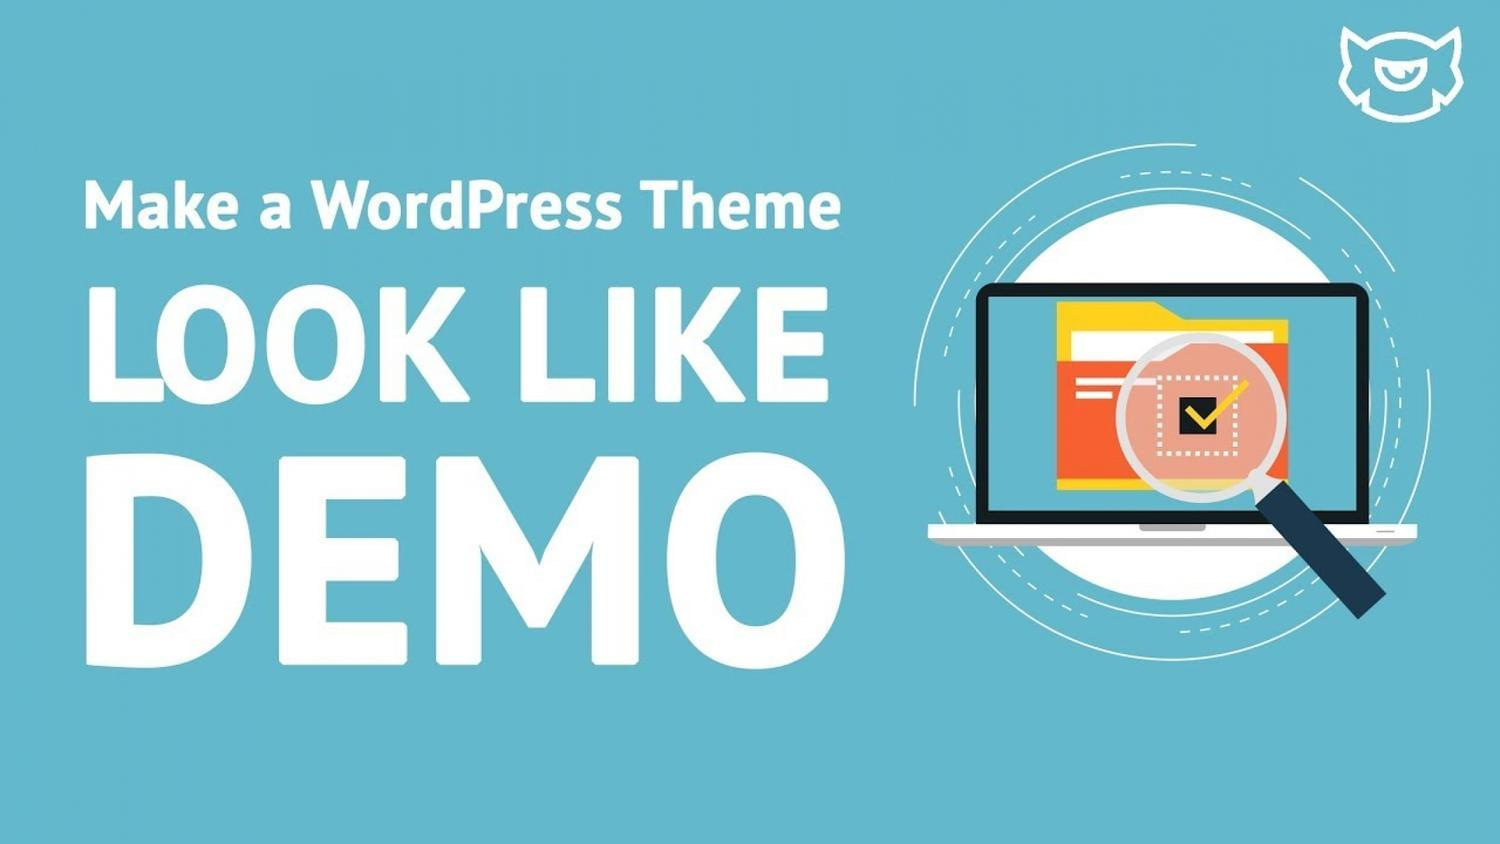 WordPress Installation & Themeforest theme setup exactly like demo by MuhammadHaroon - 114945